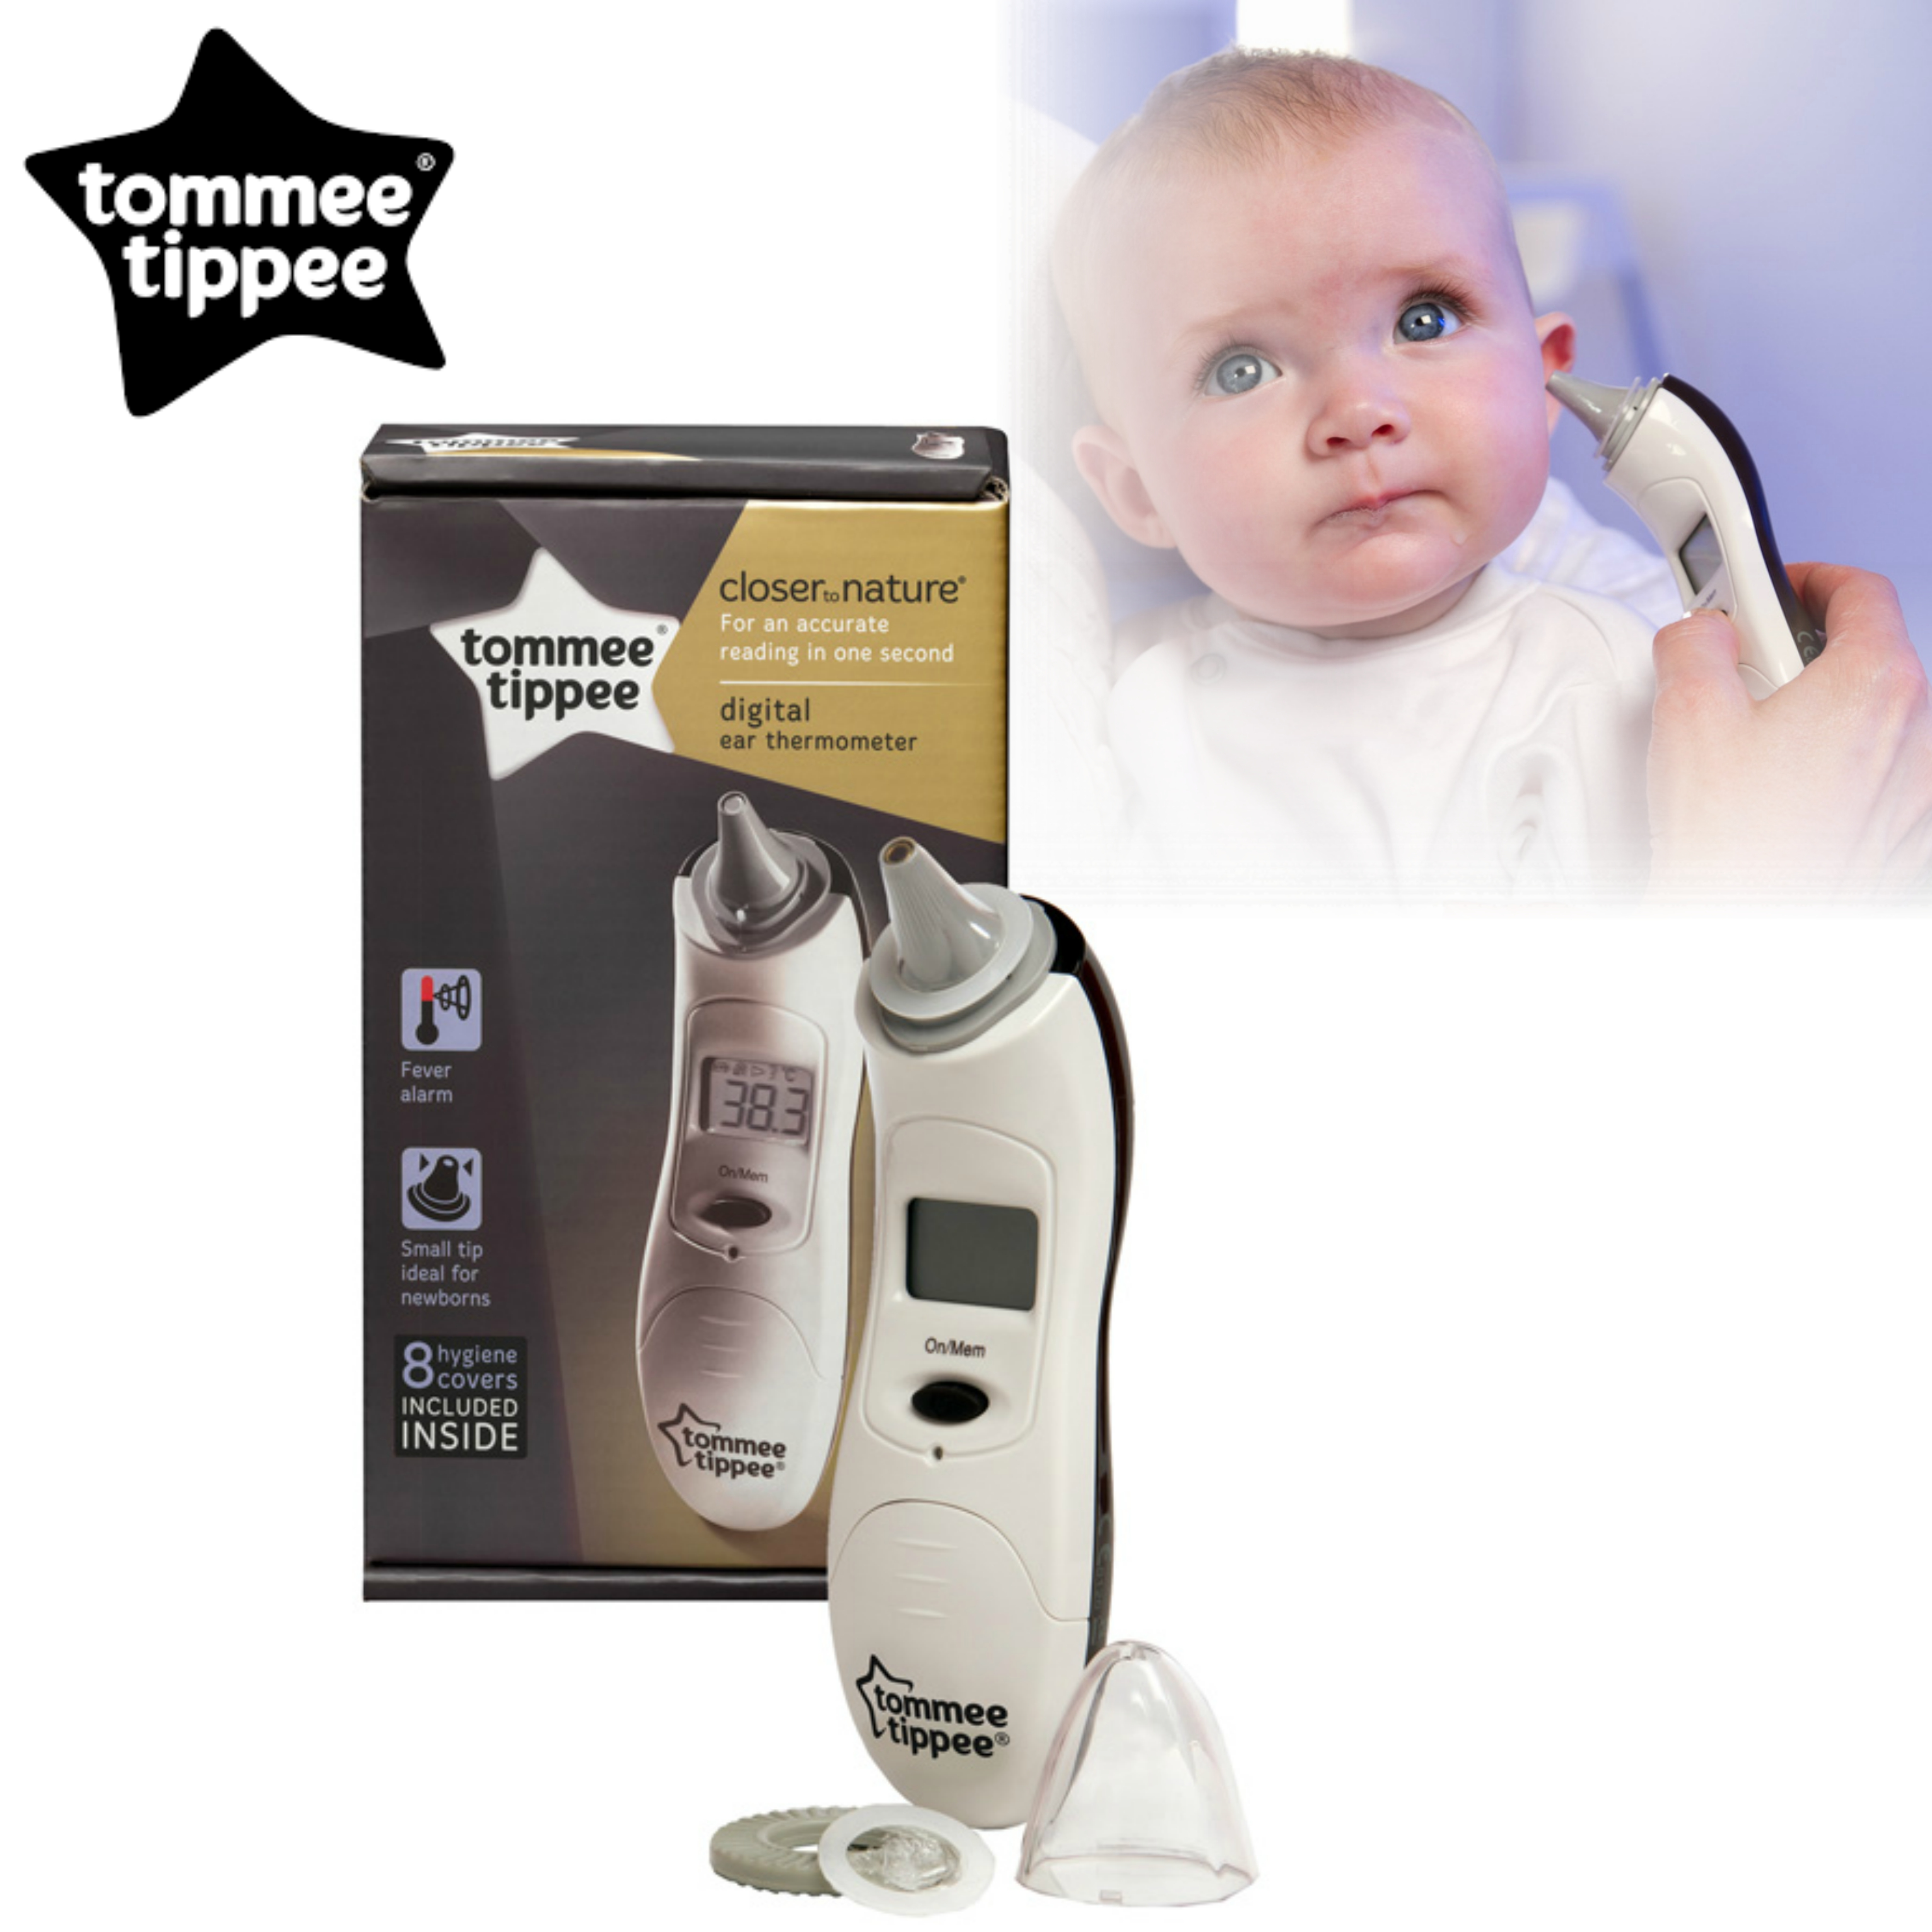 Tommee Tippee Closer to Nature Digital Ear Thermometer | Parent | Child | Nursery | New